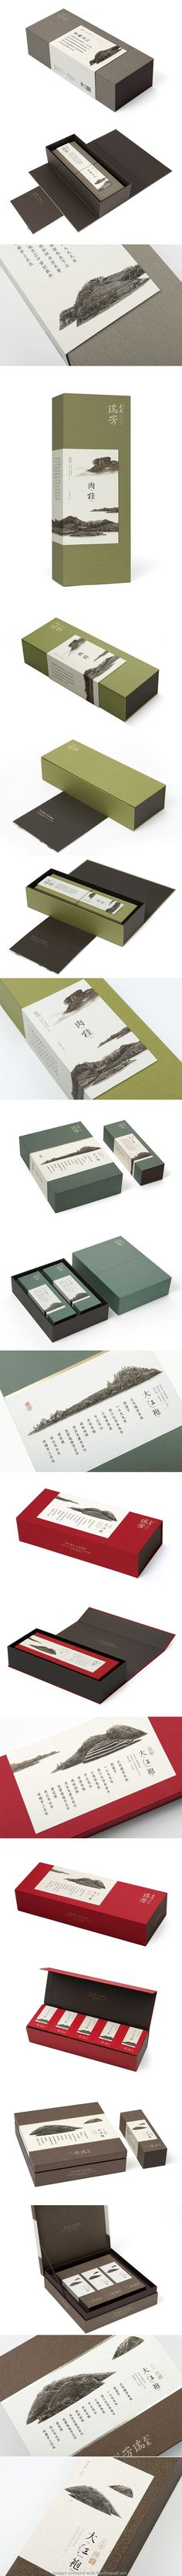 WUYI RUIFANG #tea #packaging Wuyi Rueifang tea, founded in 1899, by Mr Jiang Taiyuan in Wuyishan. | Designed by One &One PD